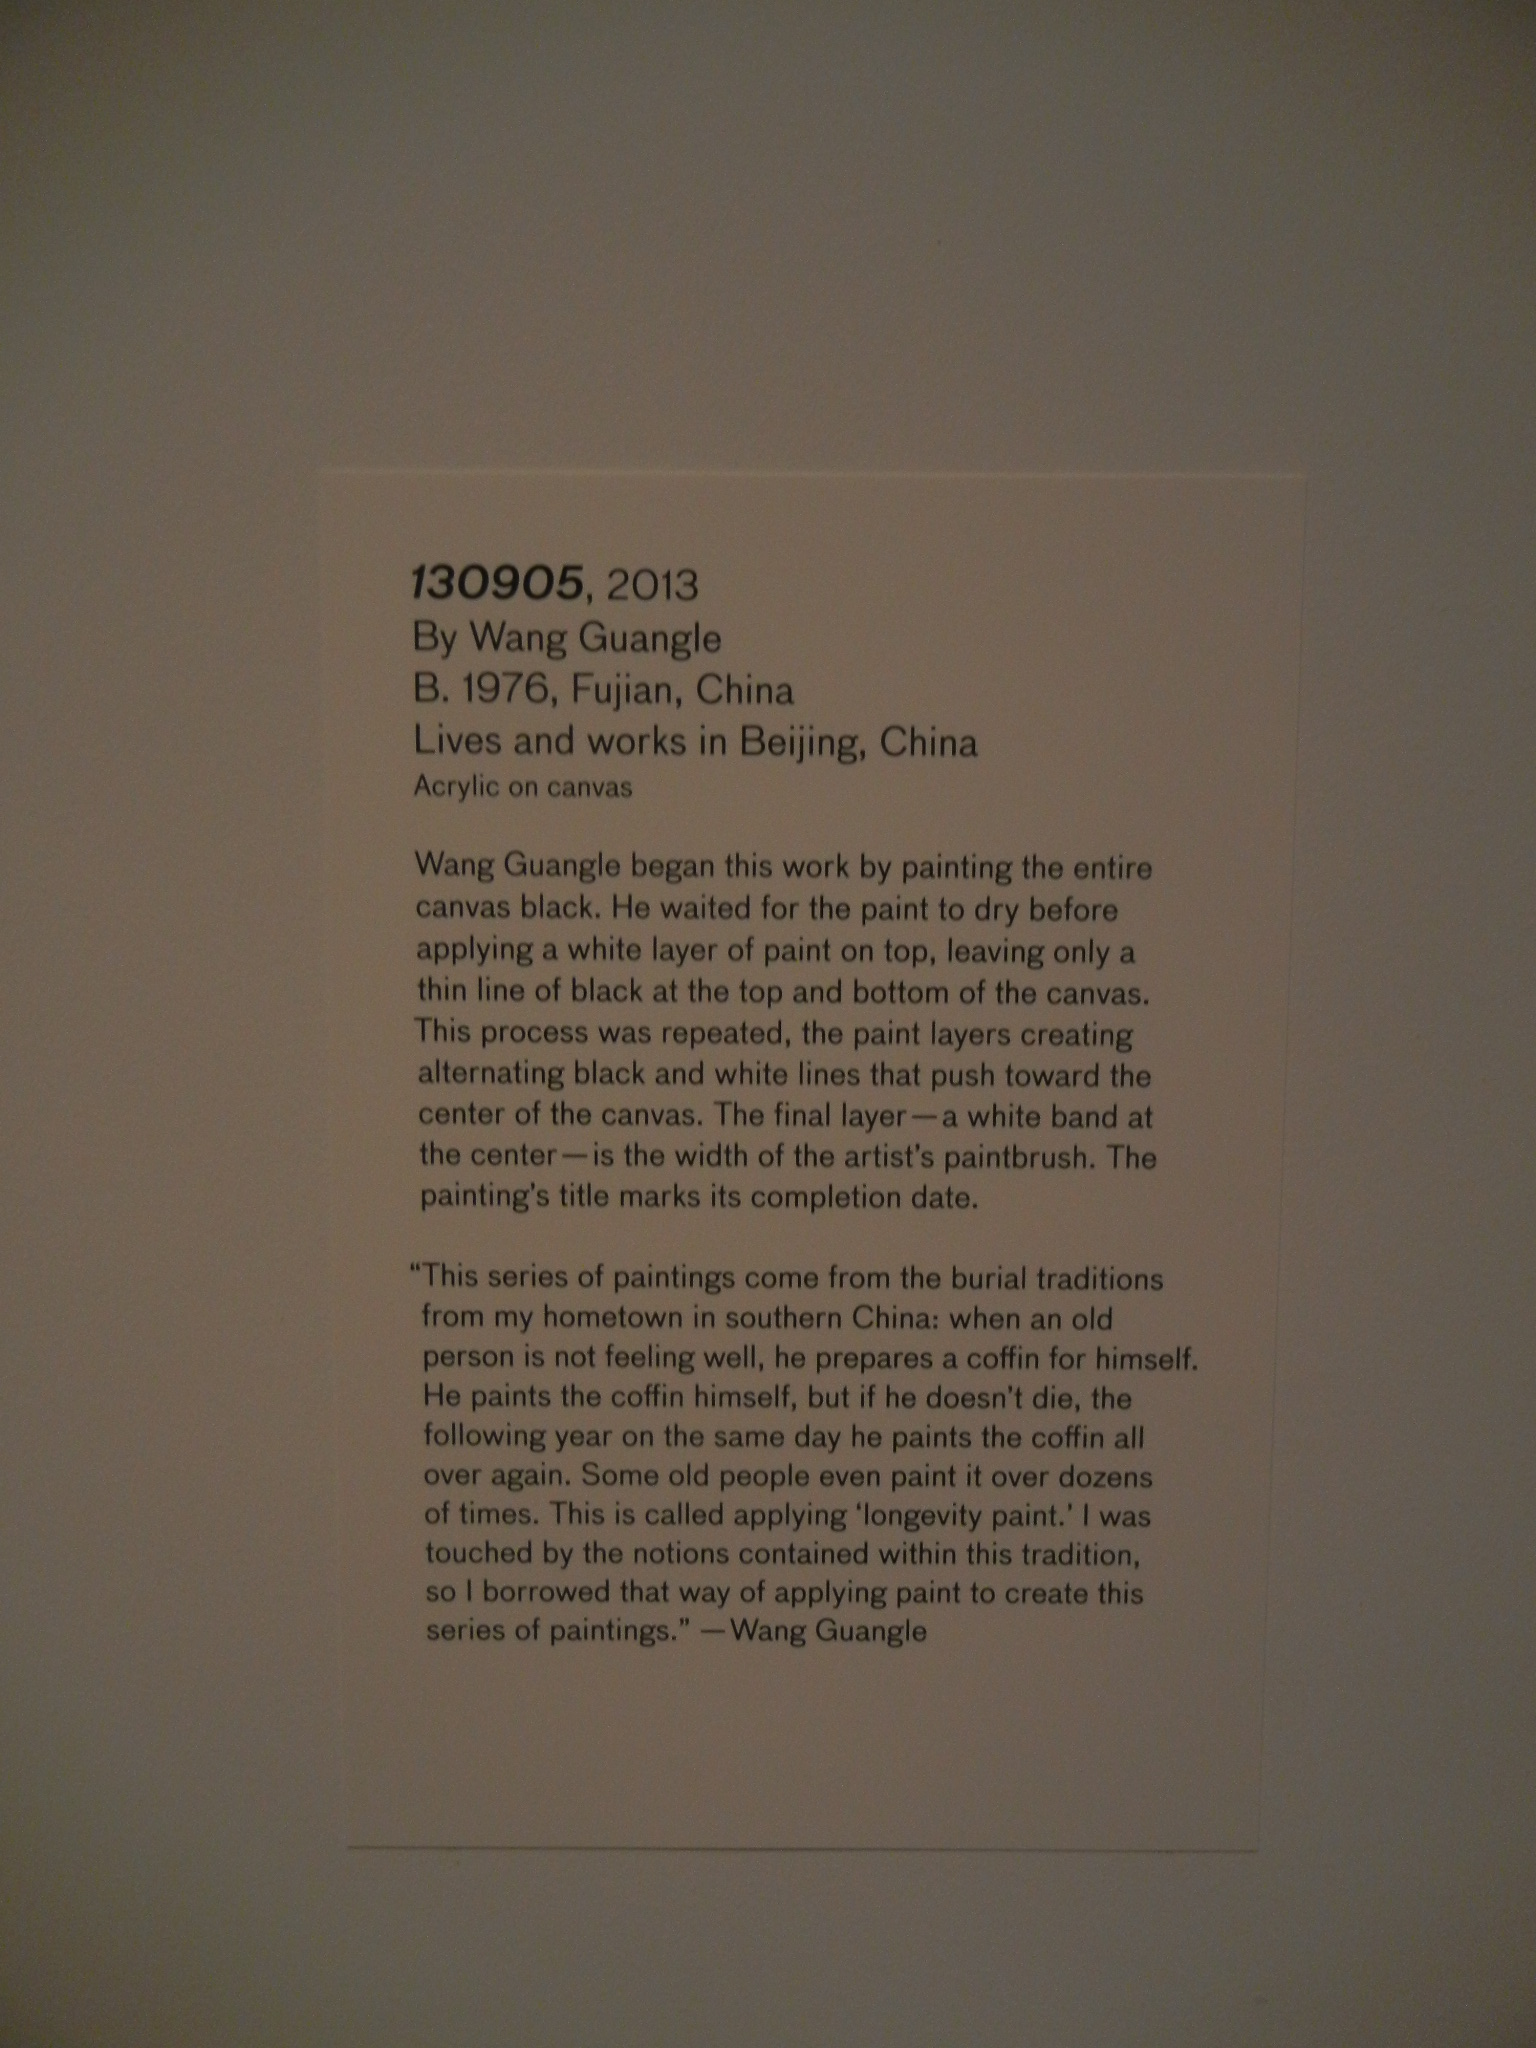 DSCN4638 _ 28 Chinese - 130905, 2013, Guangle Wang, Asian Art Museum